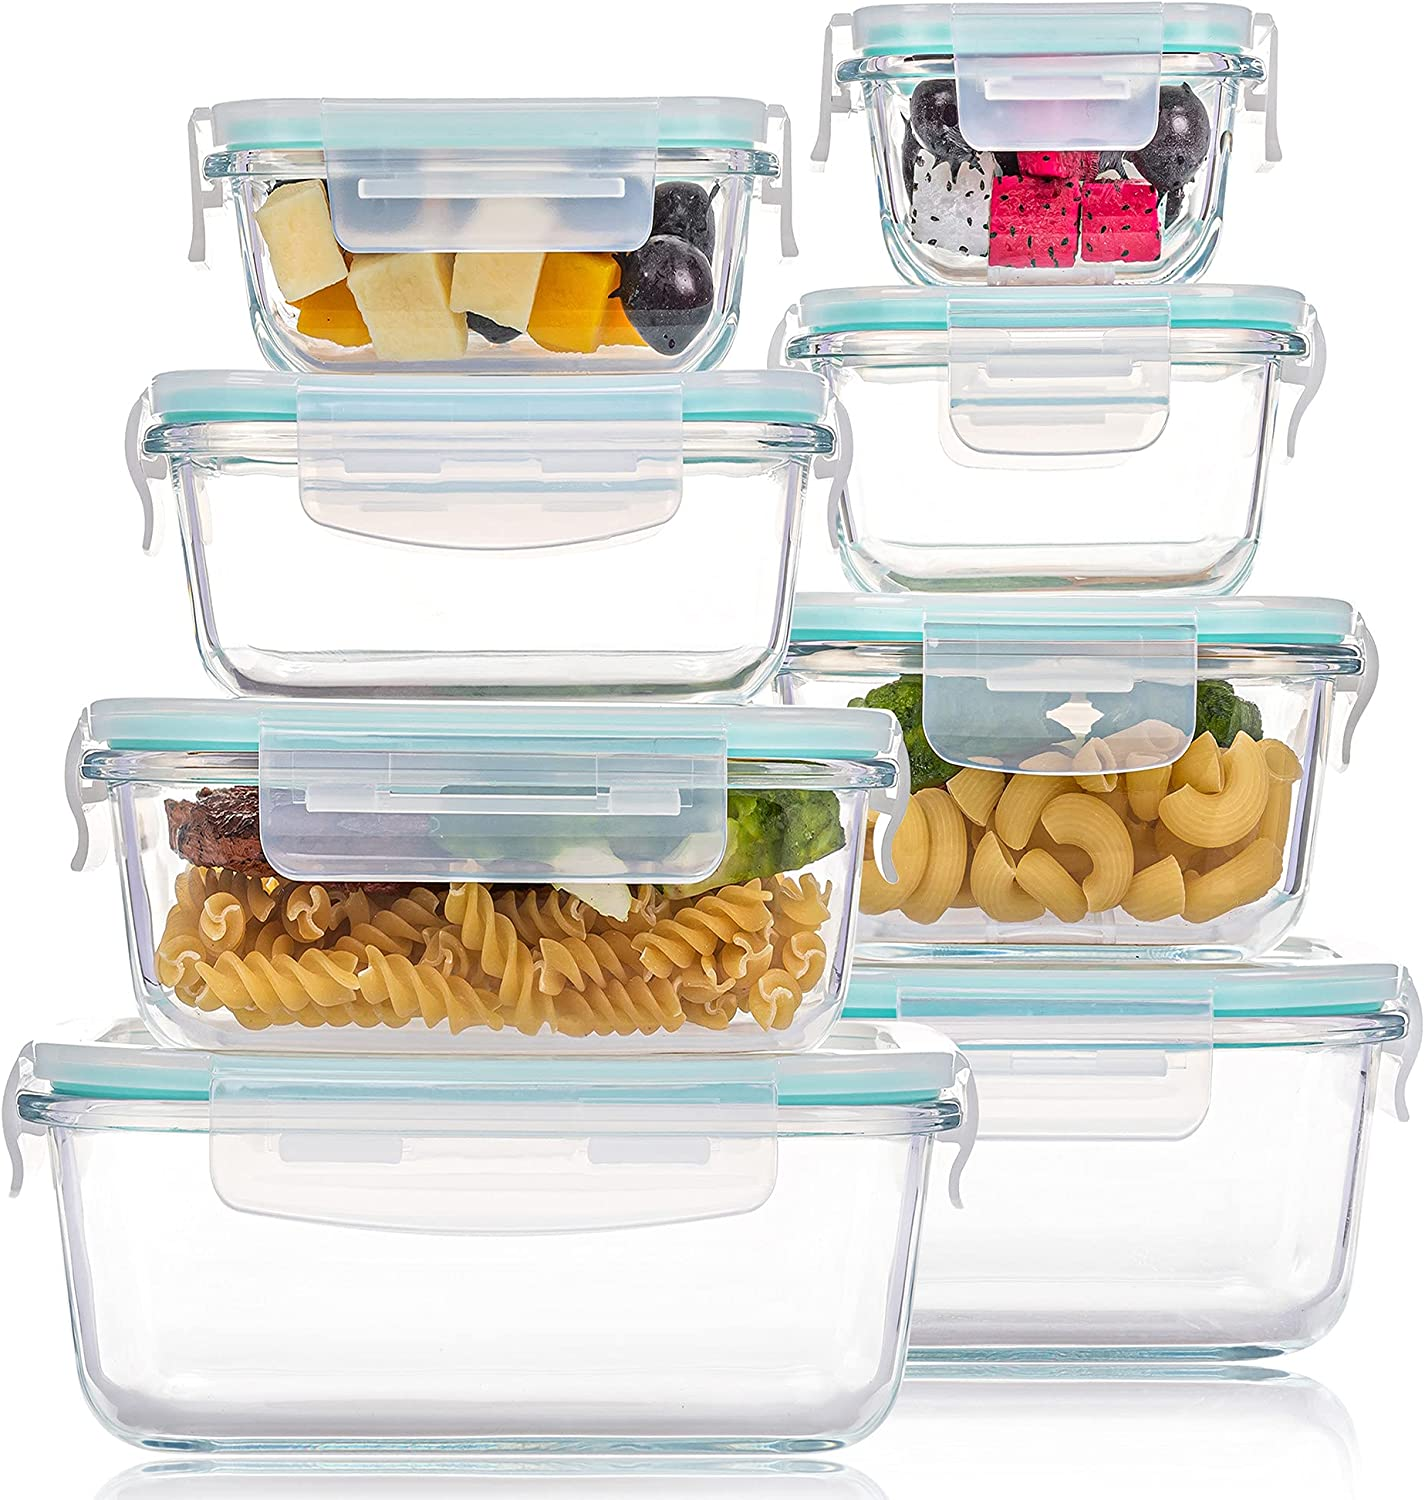 8 Pack Glass Food Storage Containers with Lids, Vtopmart Glass Meal Prep Containers, Airtight Glass Bento Boxes with Leak Proof Locking Lids, for Microwave, Oven, Freezer and Dishwasher